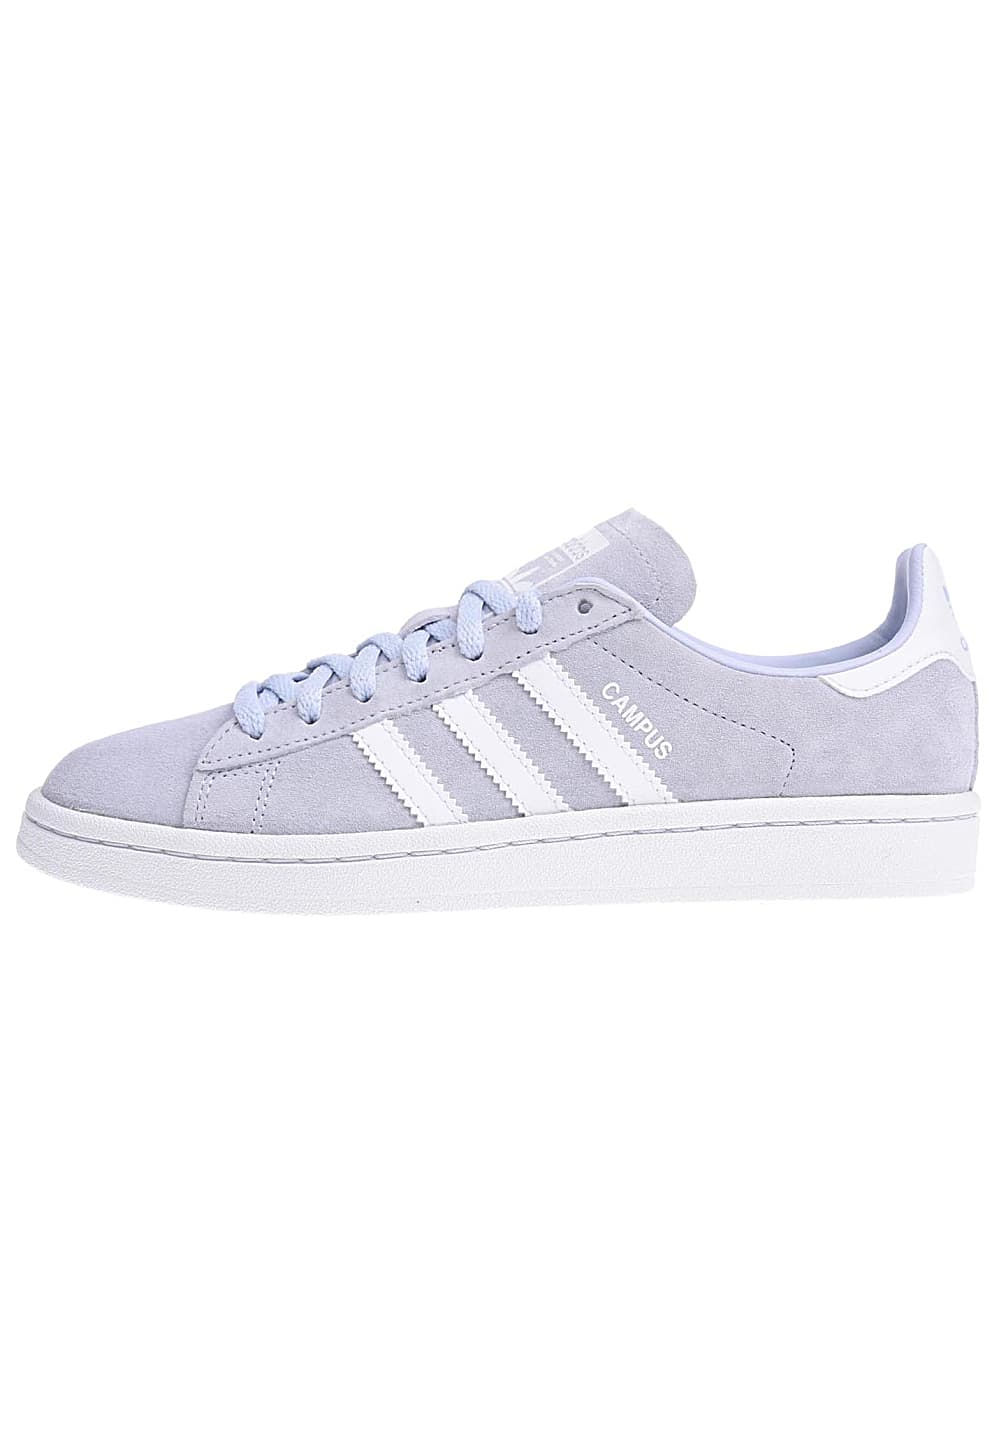 many styles official shop the cheapest ADIDAS ORIGINALS Campus - Sneakers for Women - Blue